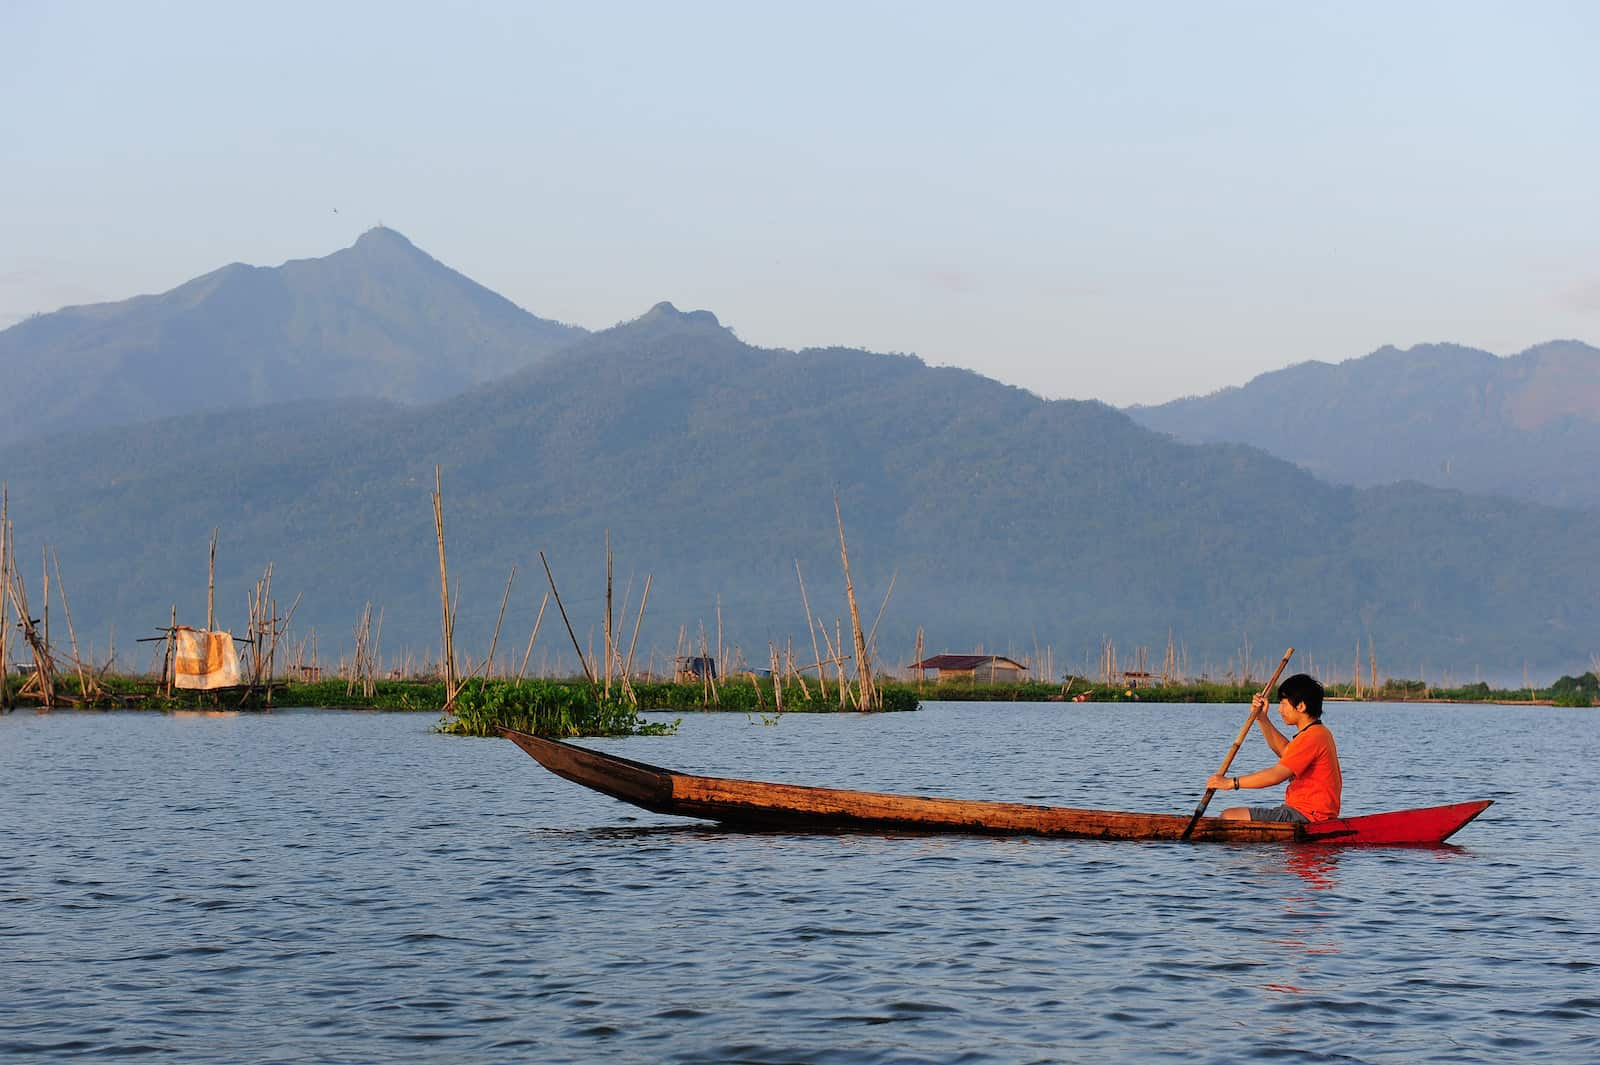 A young man in a red shirt sits in a long canoe, rowing on a large body of water, with mountains in the background.